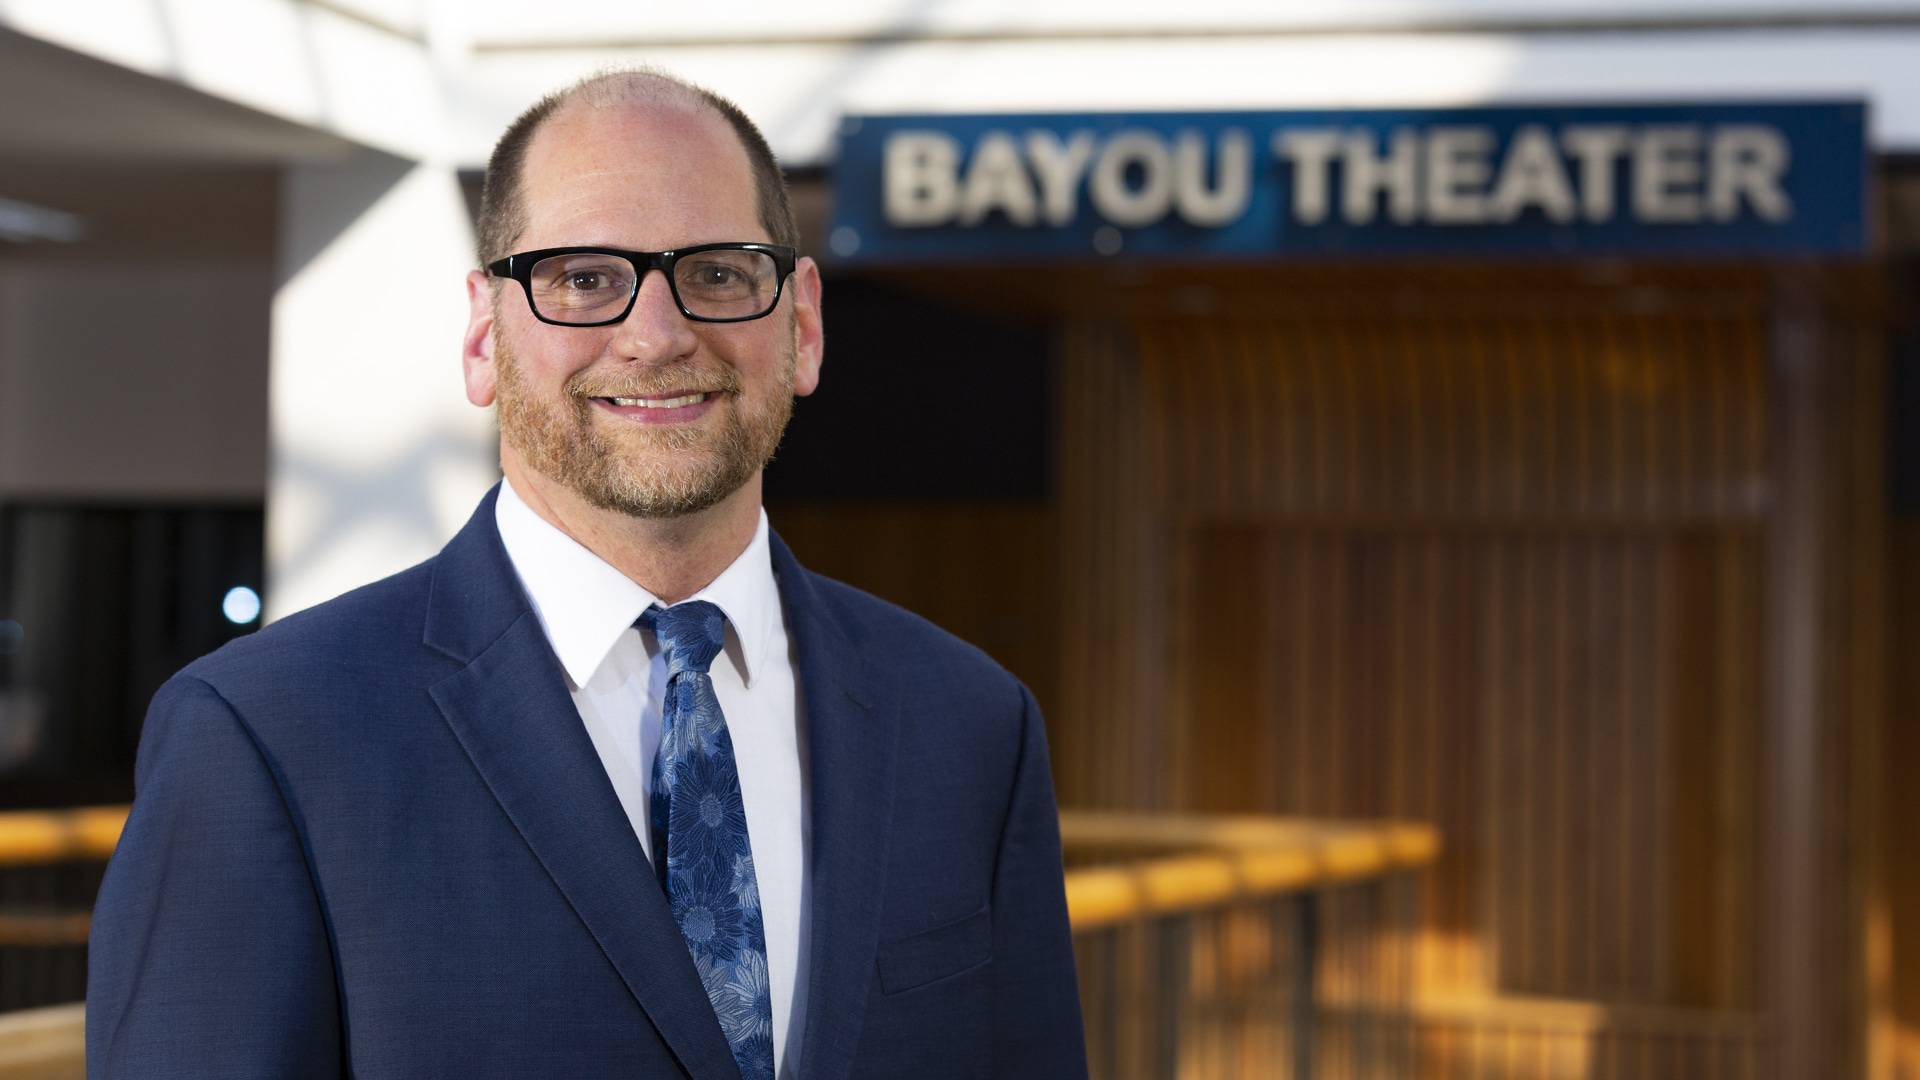 UHCL Art Gallery, Bayou Theater debuts cultural arts director